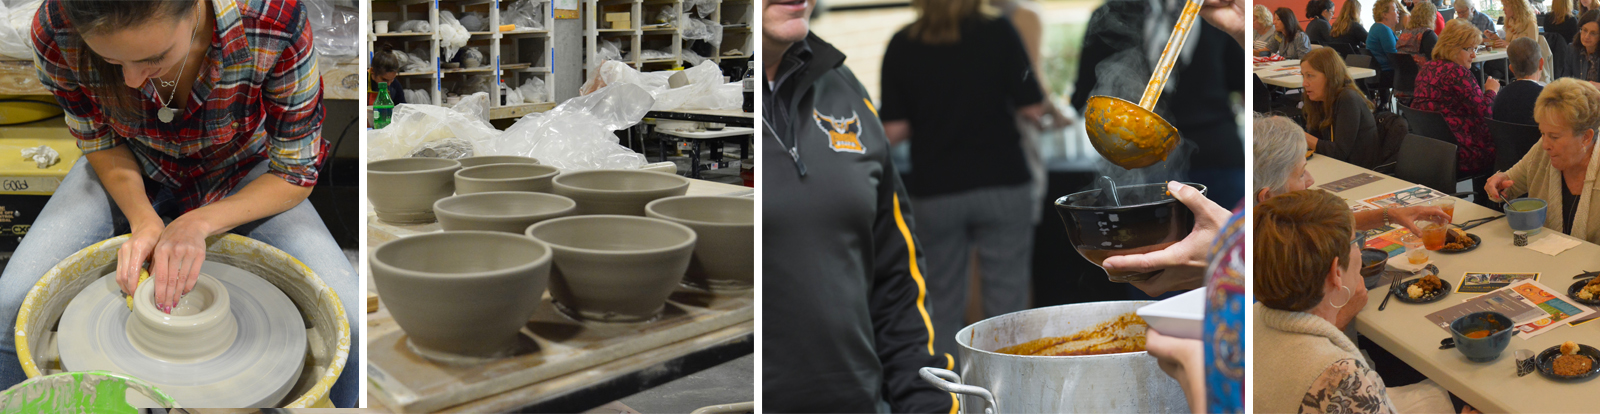 ceramics student makes bowls